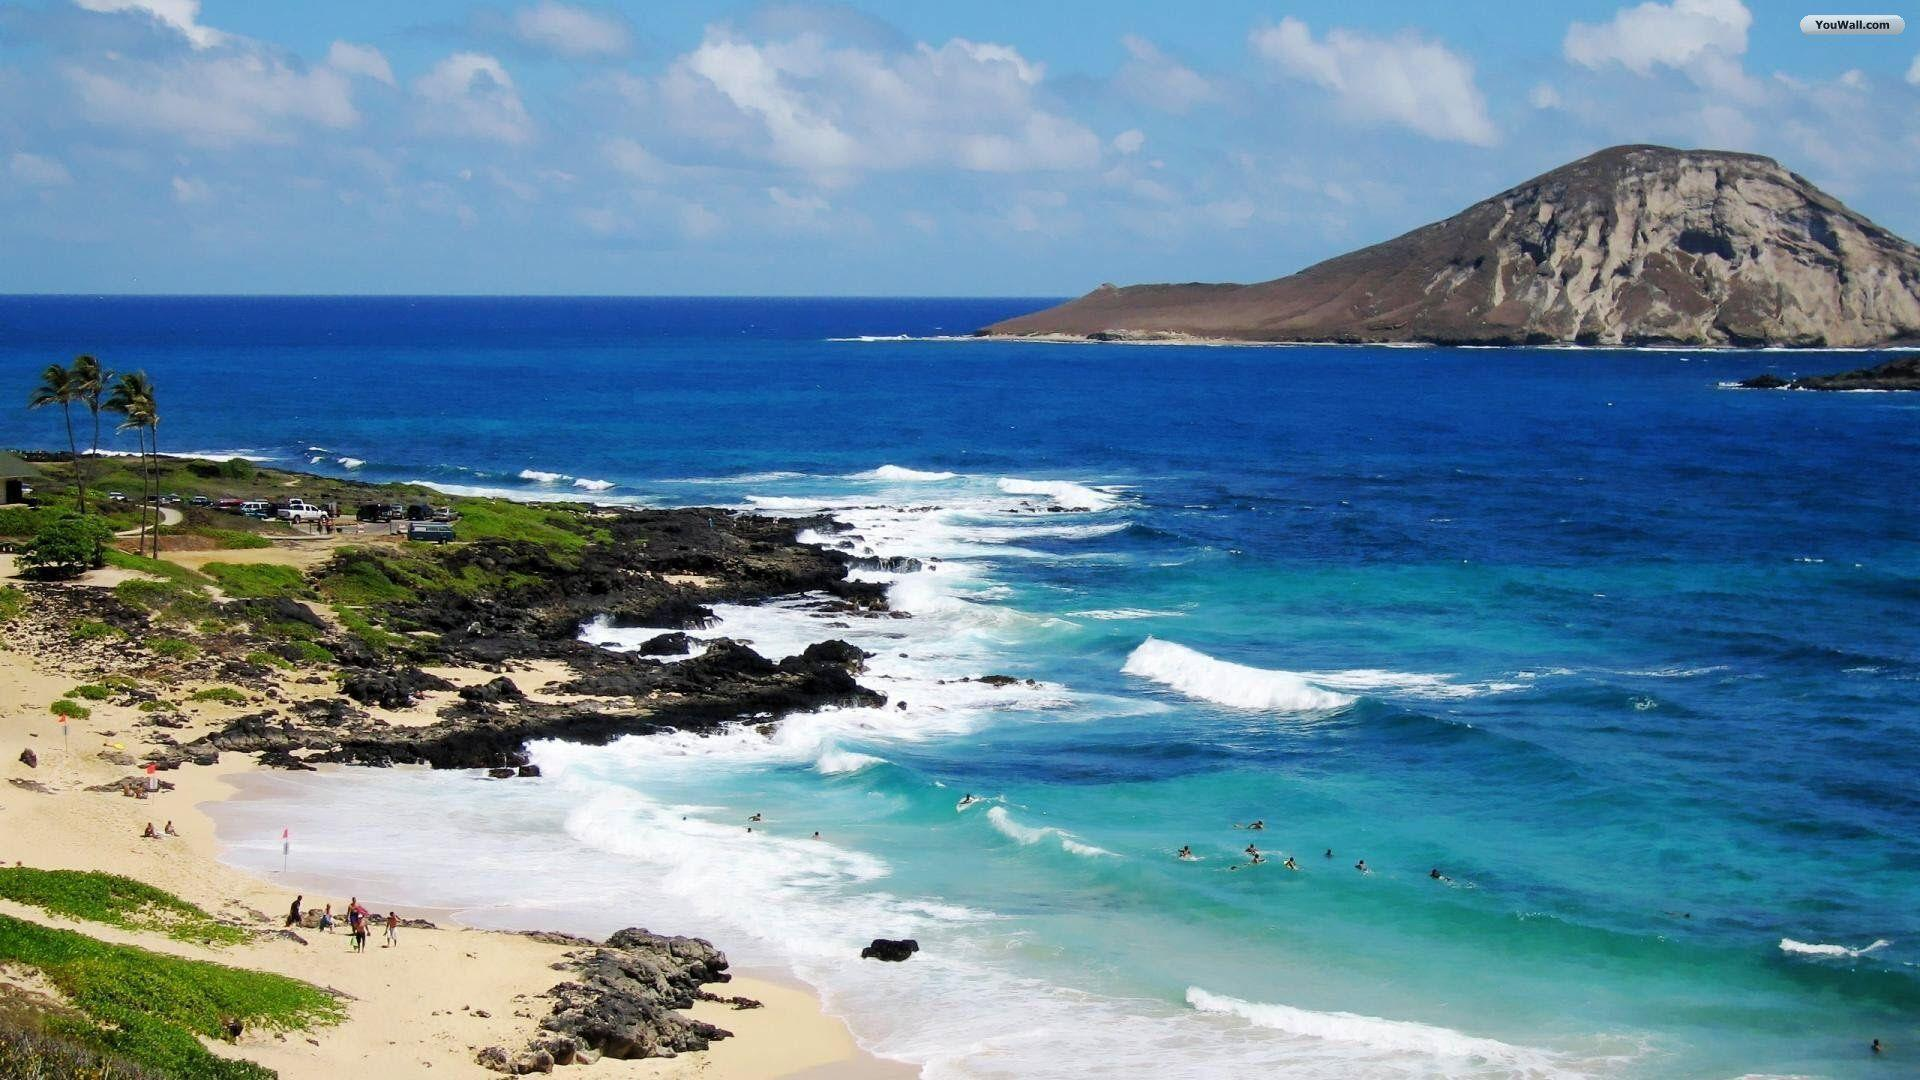 Hawaii Beaches wallpapers